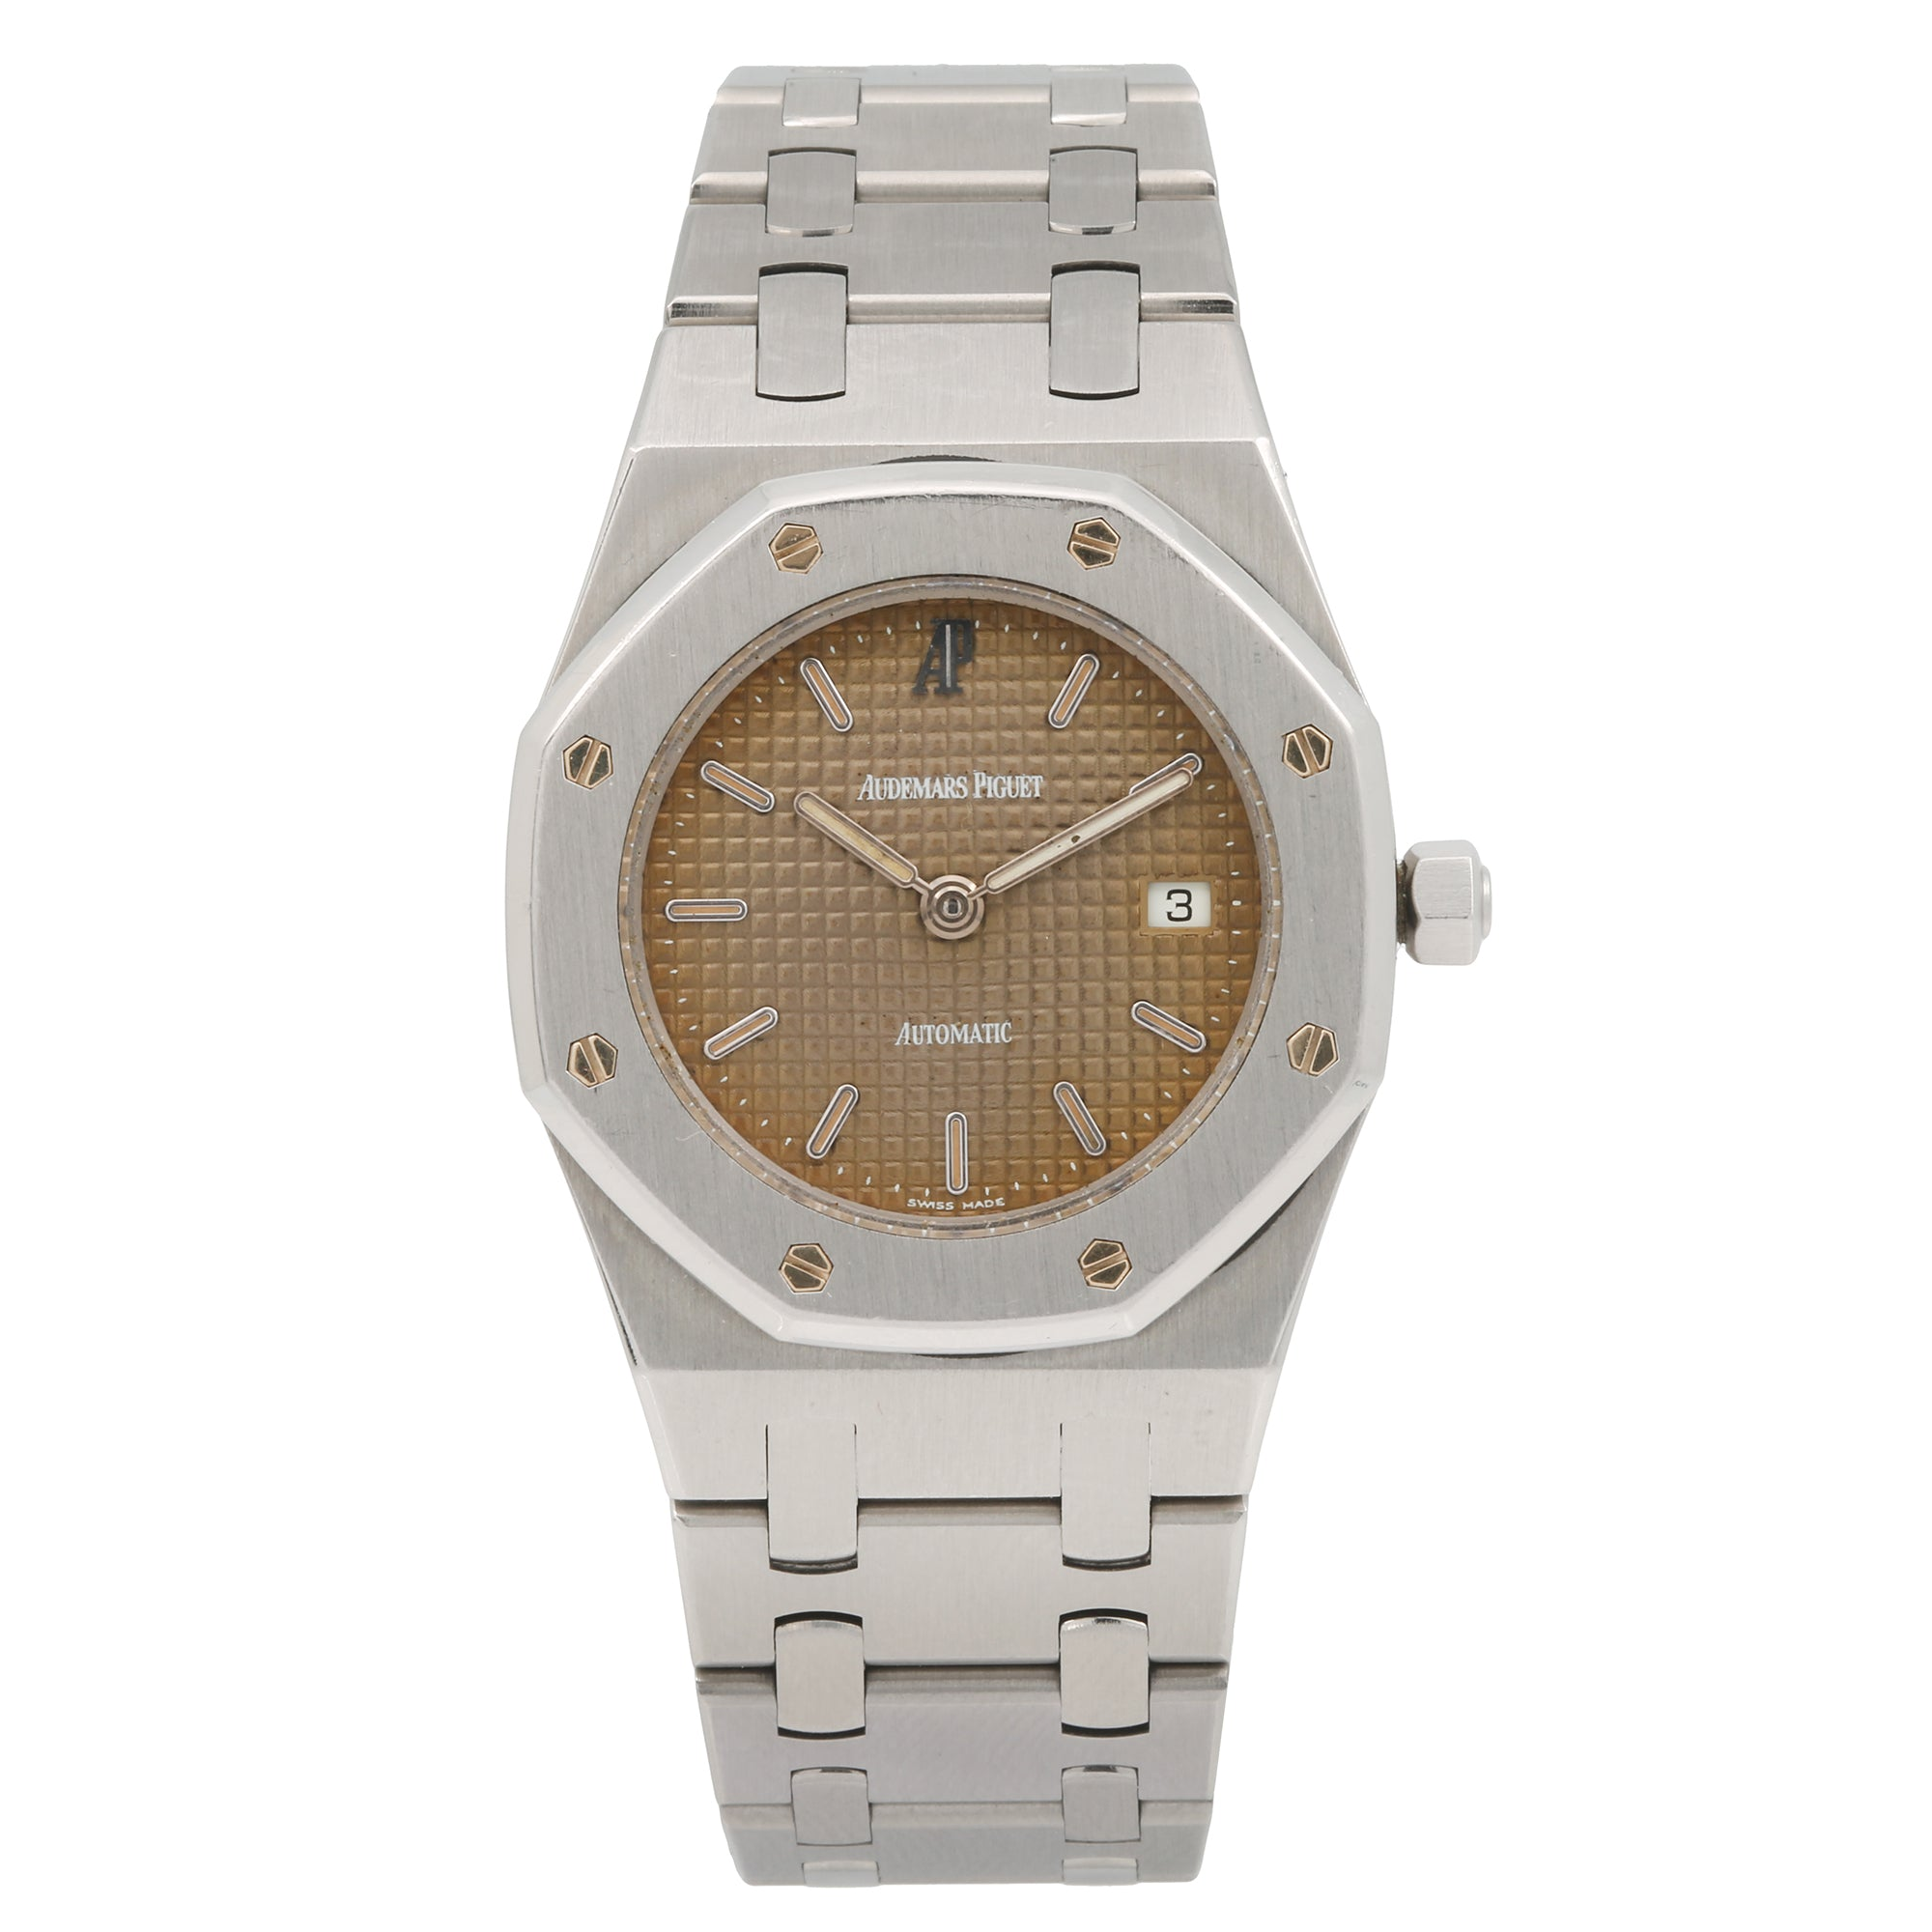 Audemars Piguet Royal Oak 56175TT 33MM Brown Dial With Stainless Steel Bracelet